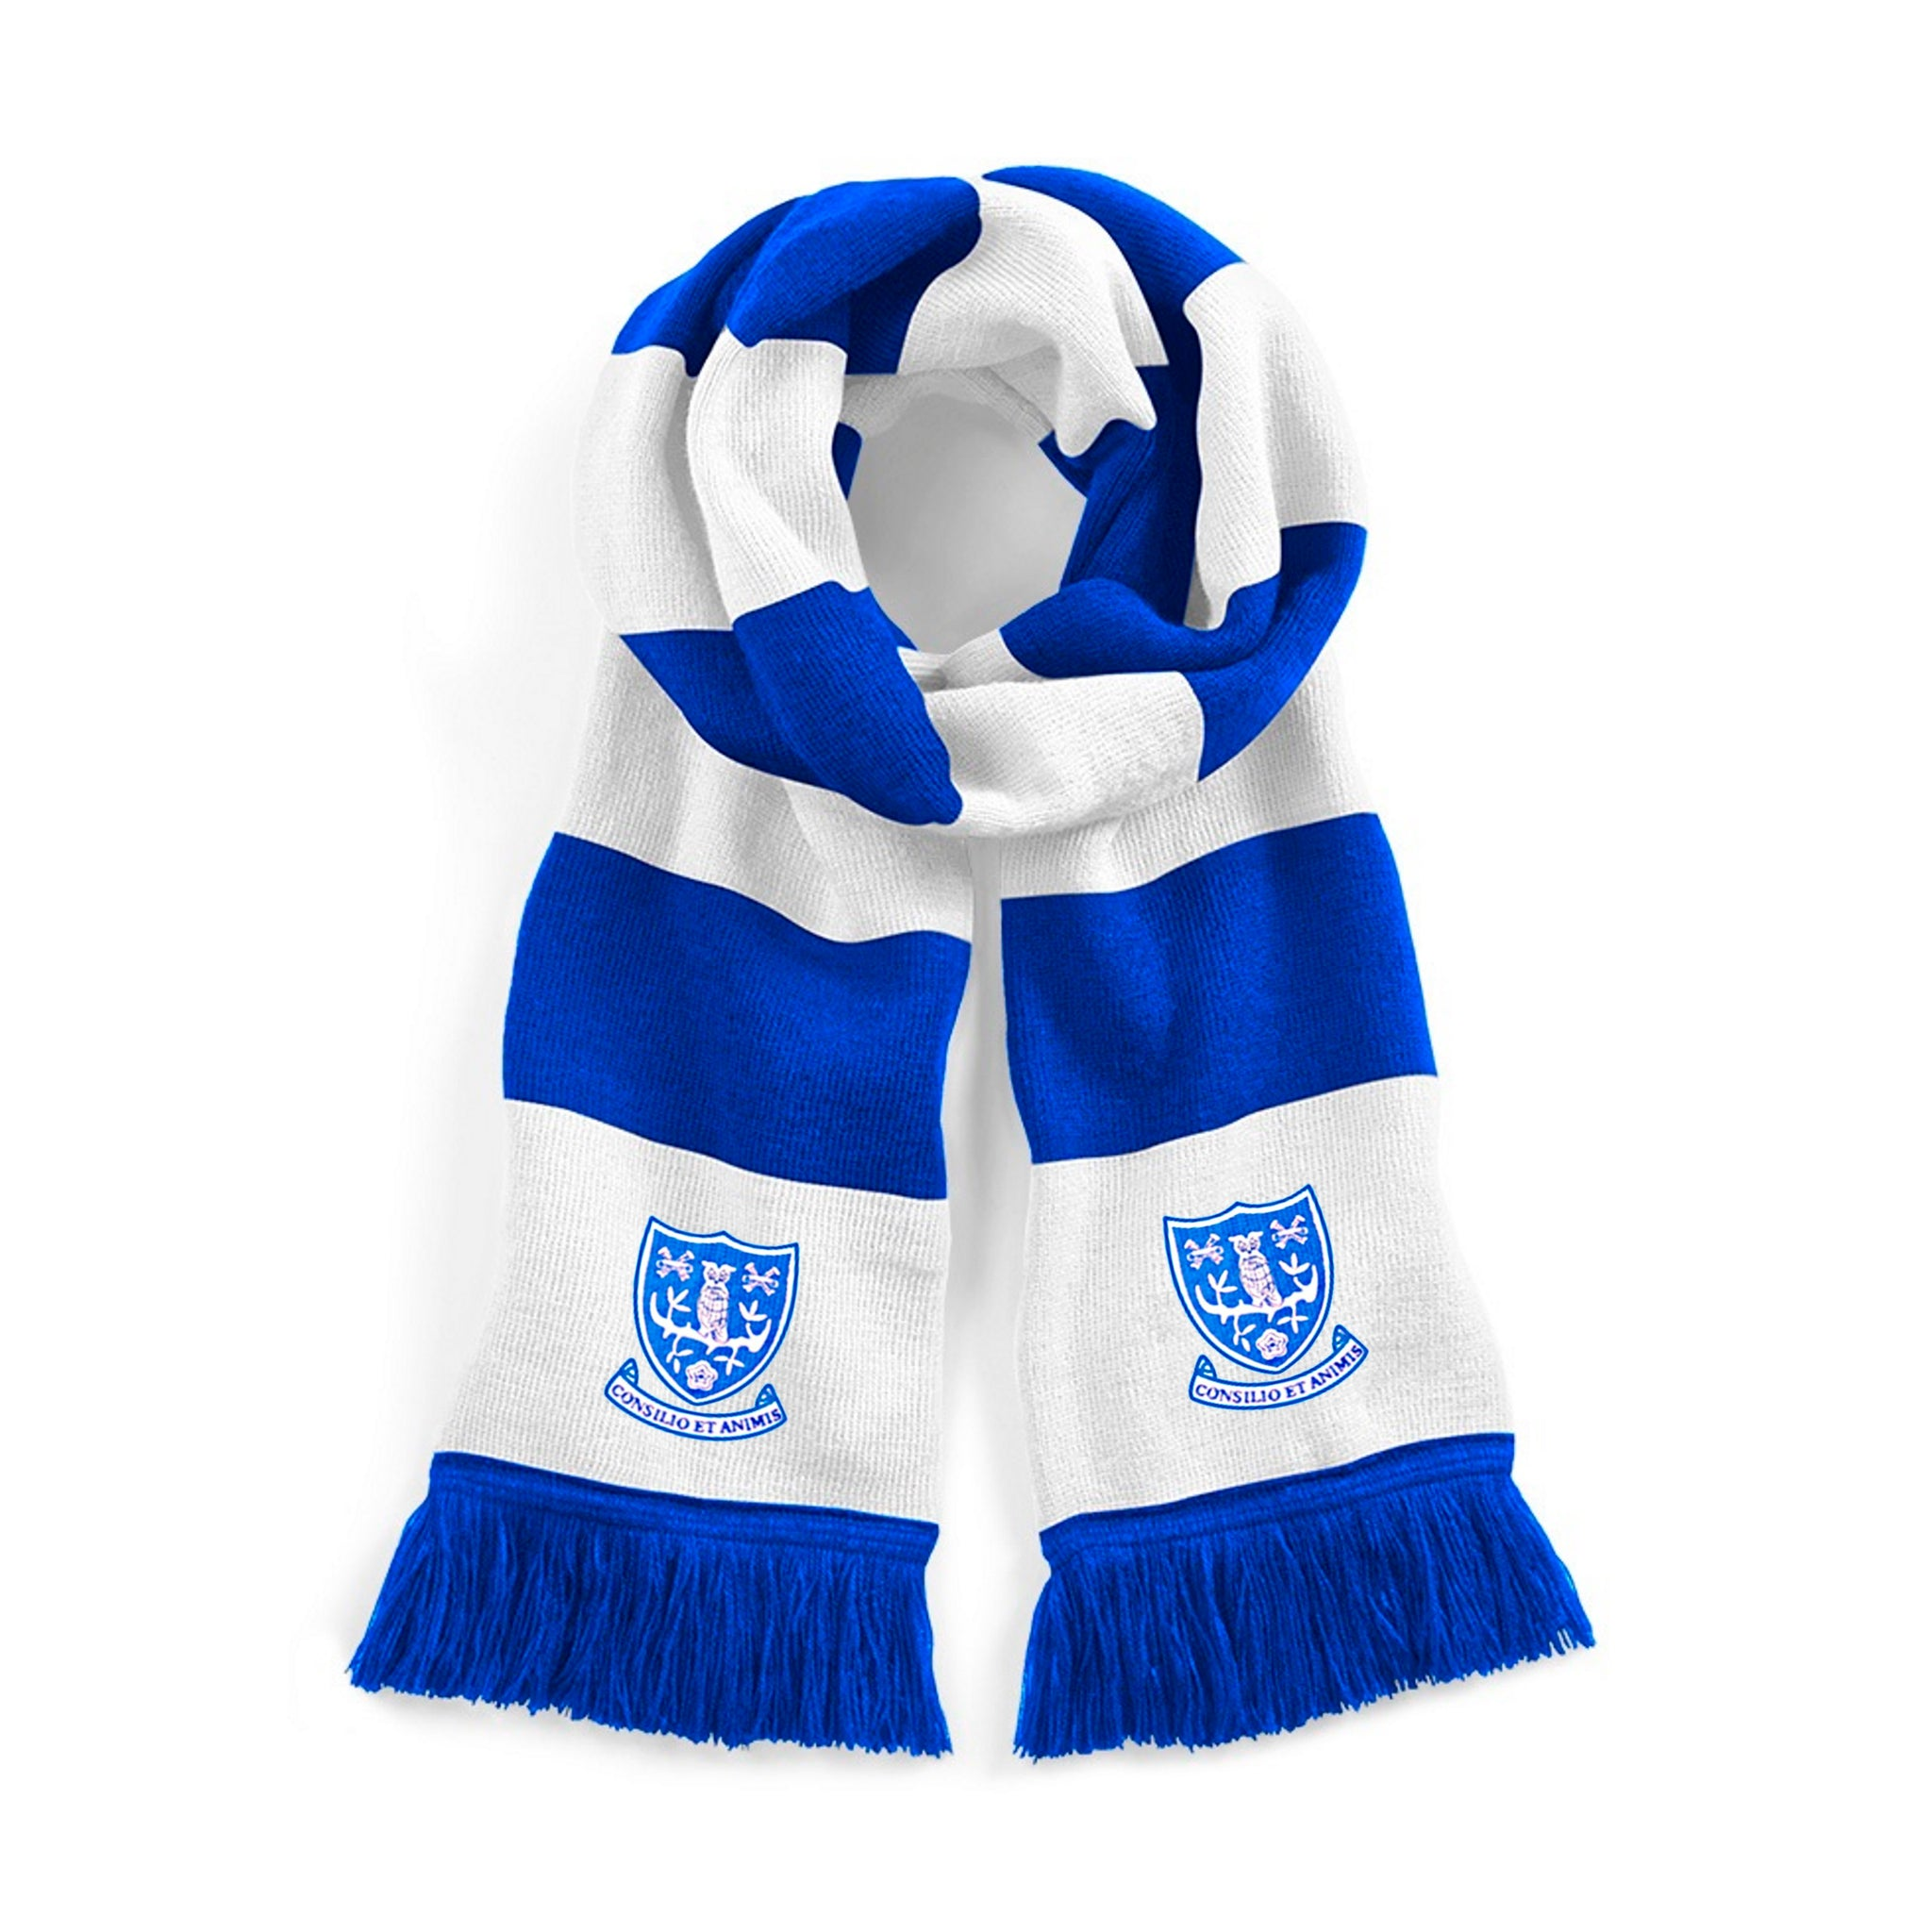 Sheffield Wednesday 1960s Scarf - Old School Football